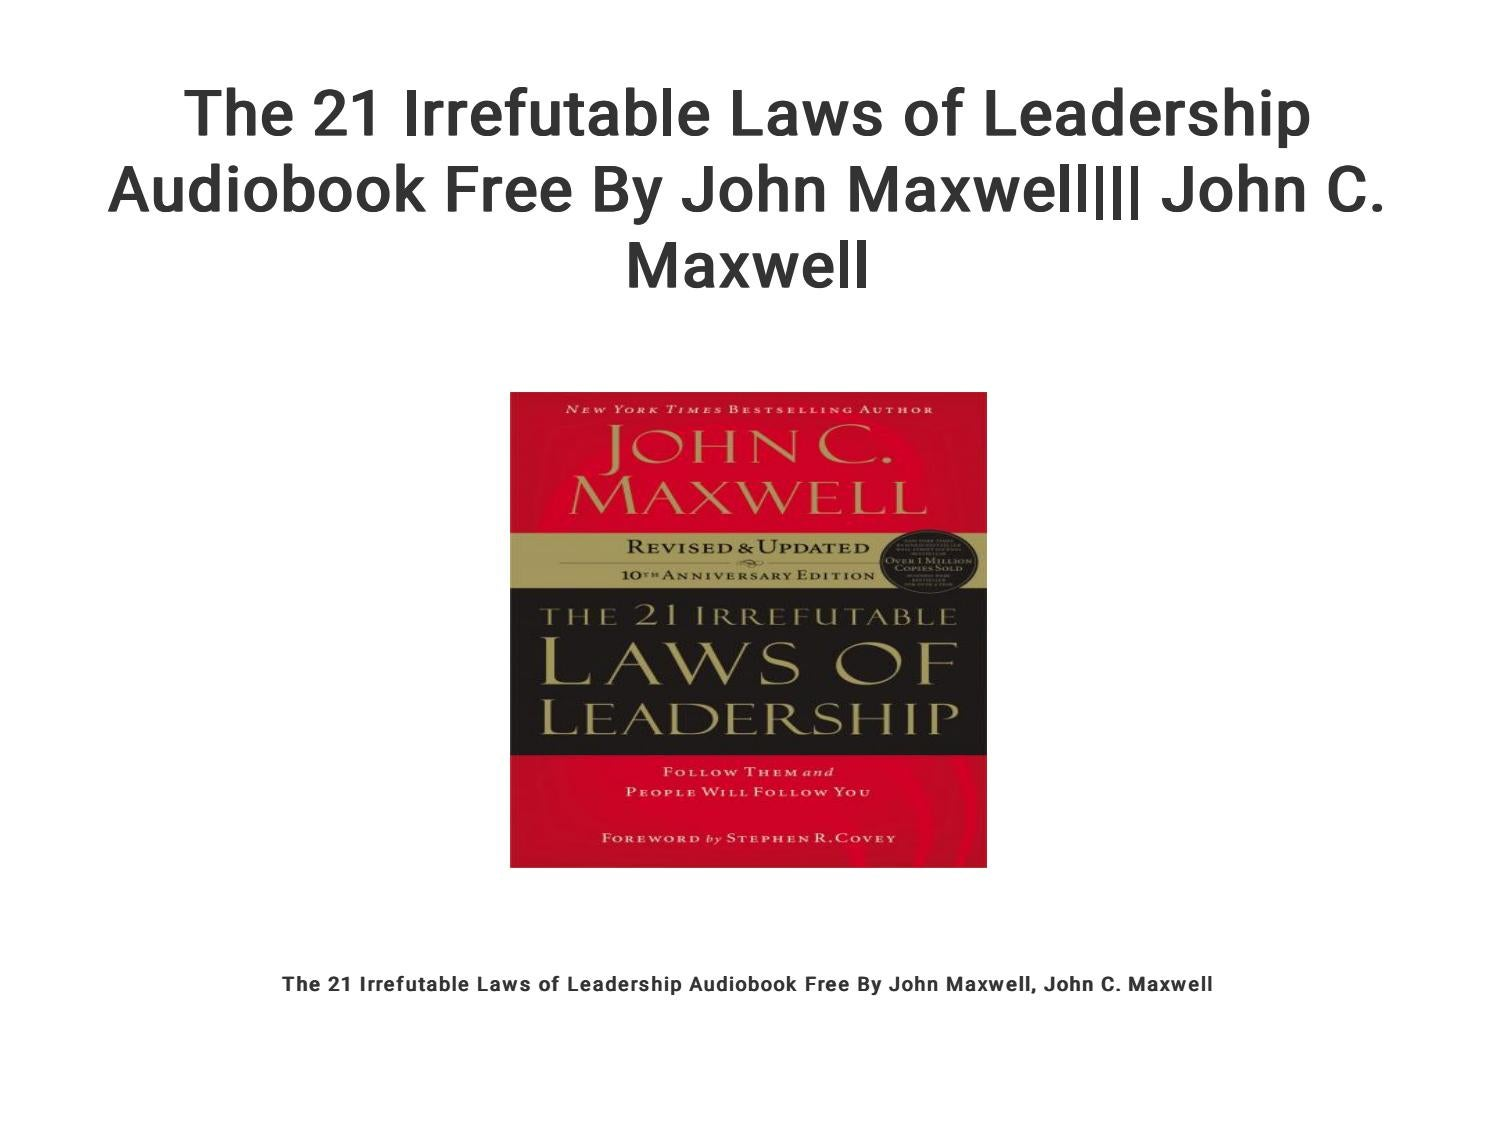 21 irrefutable laws of leadership audio free download